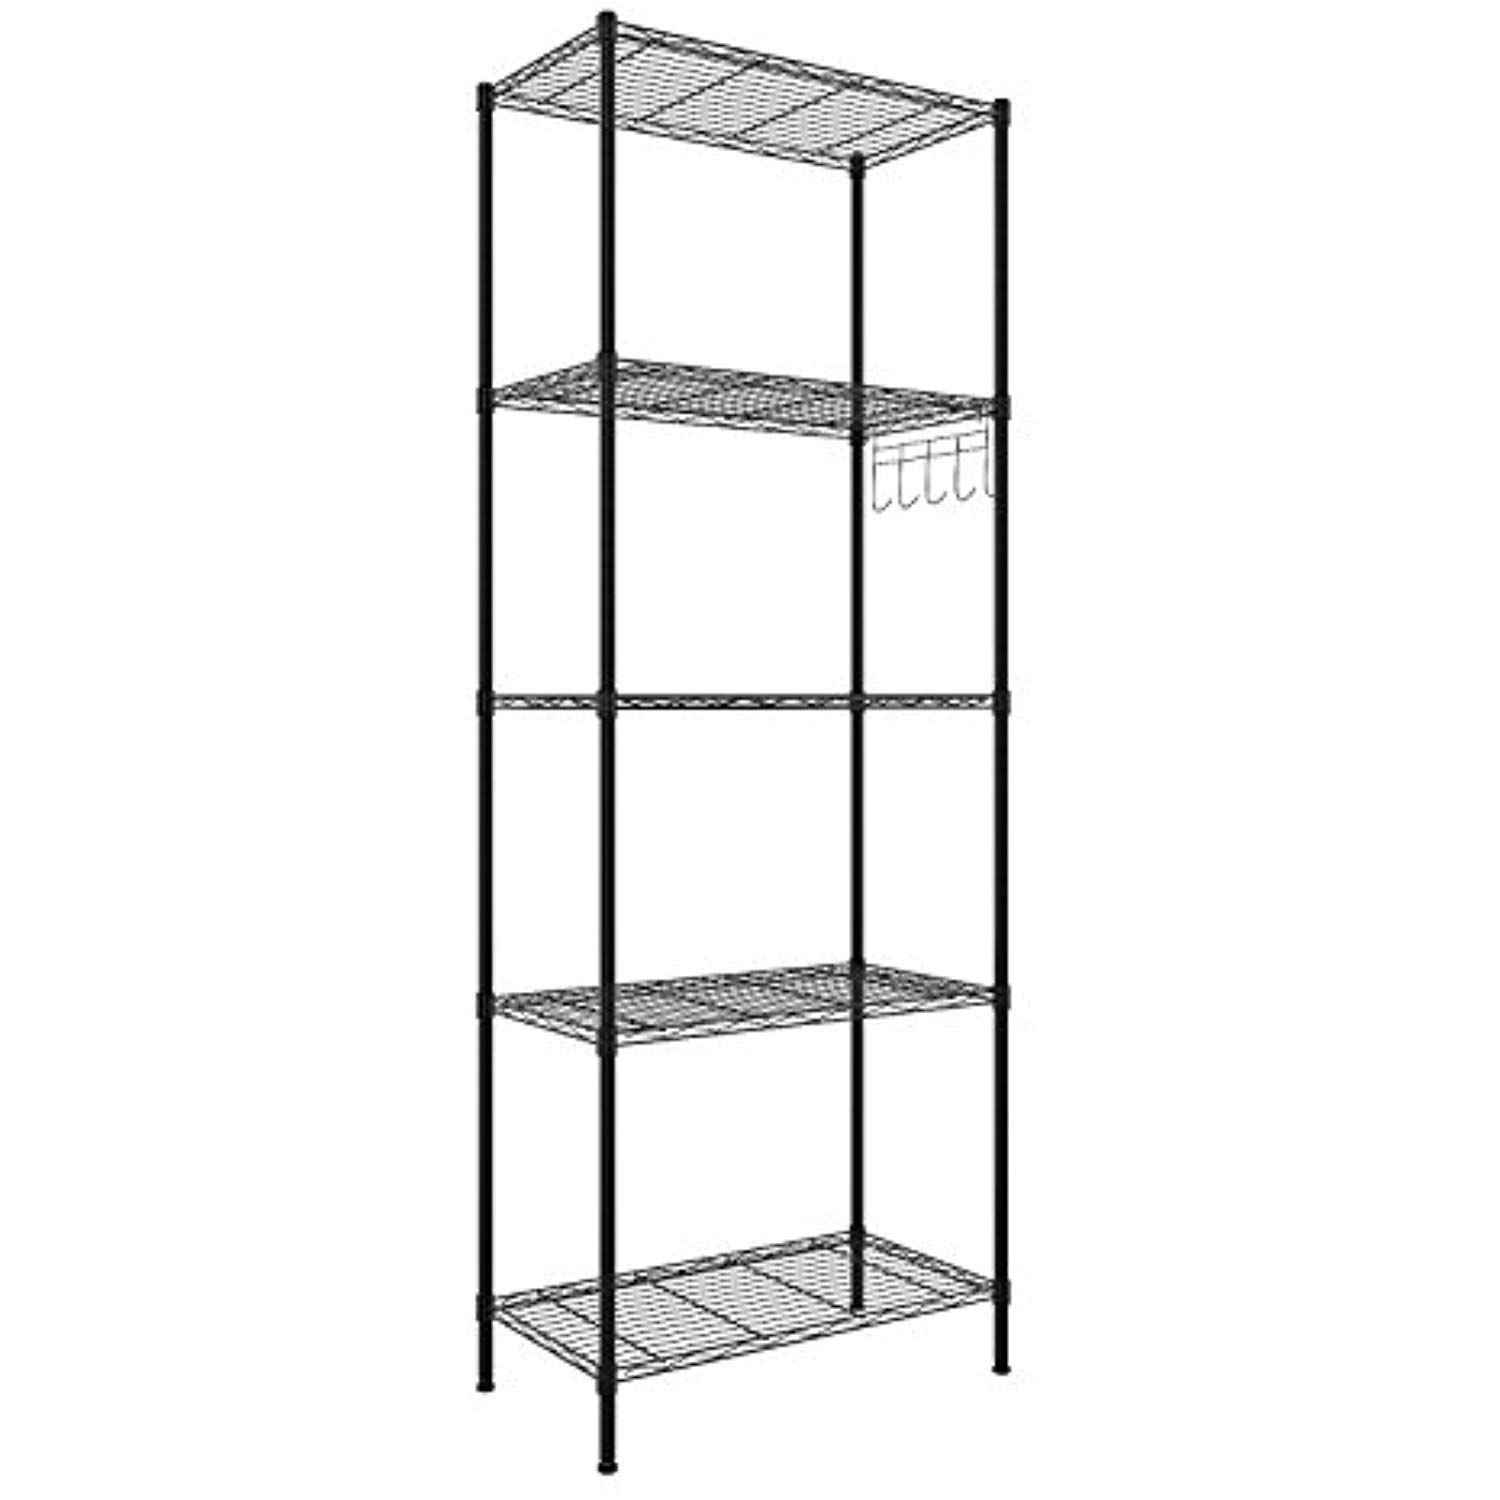 Bathwa Wire Storage Rack 5 Tier Metal Shelving Units Kitchen Garage Storage Shelves Free Standing Silver With Images Wire Shelving Units Home Basics Wire Storage Shelves